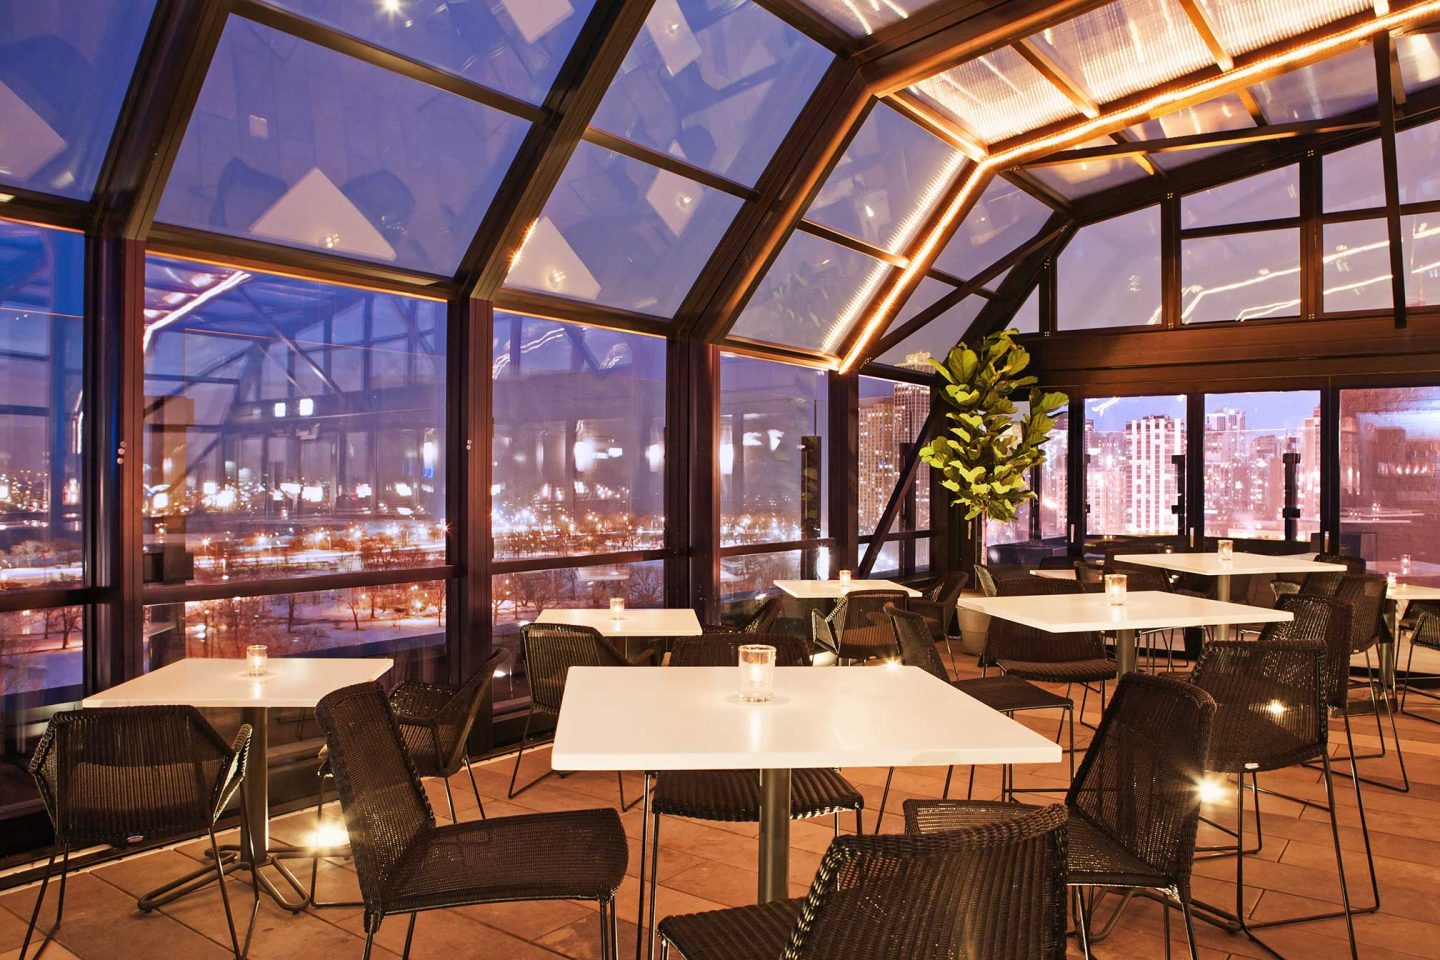 best rooftop bars in chicago, best bars in Chicago, chicago guide, what to do in Chicago, travel guide, Jennifer Worman, Red Soles and Red Wine, The J Parker